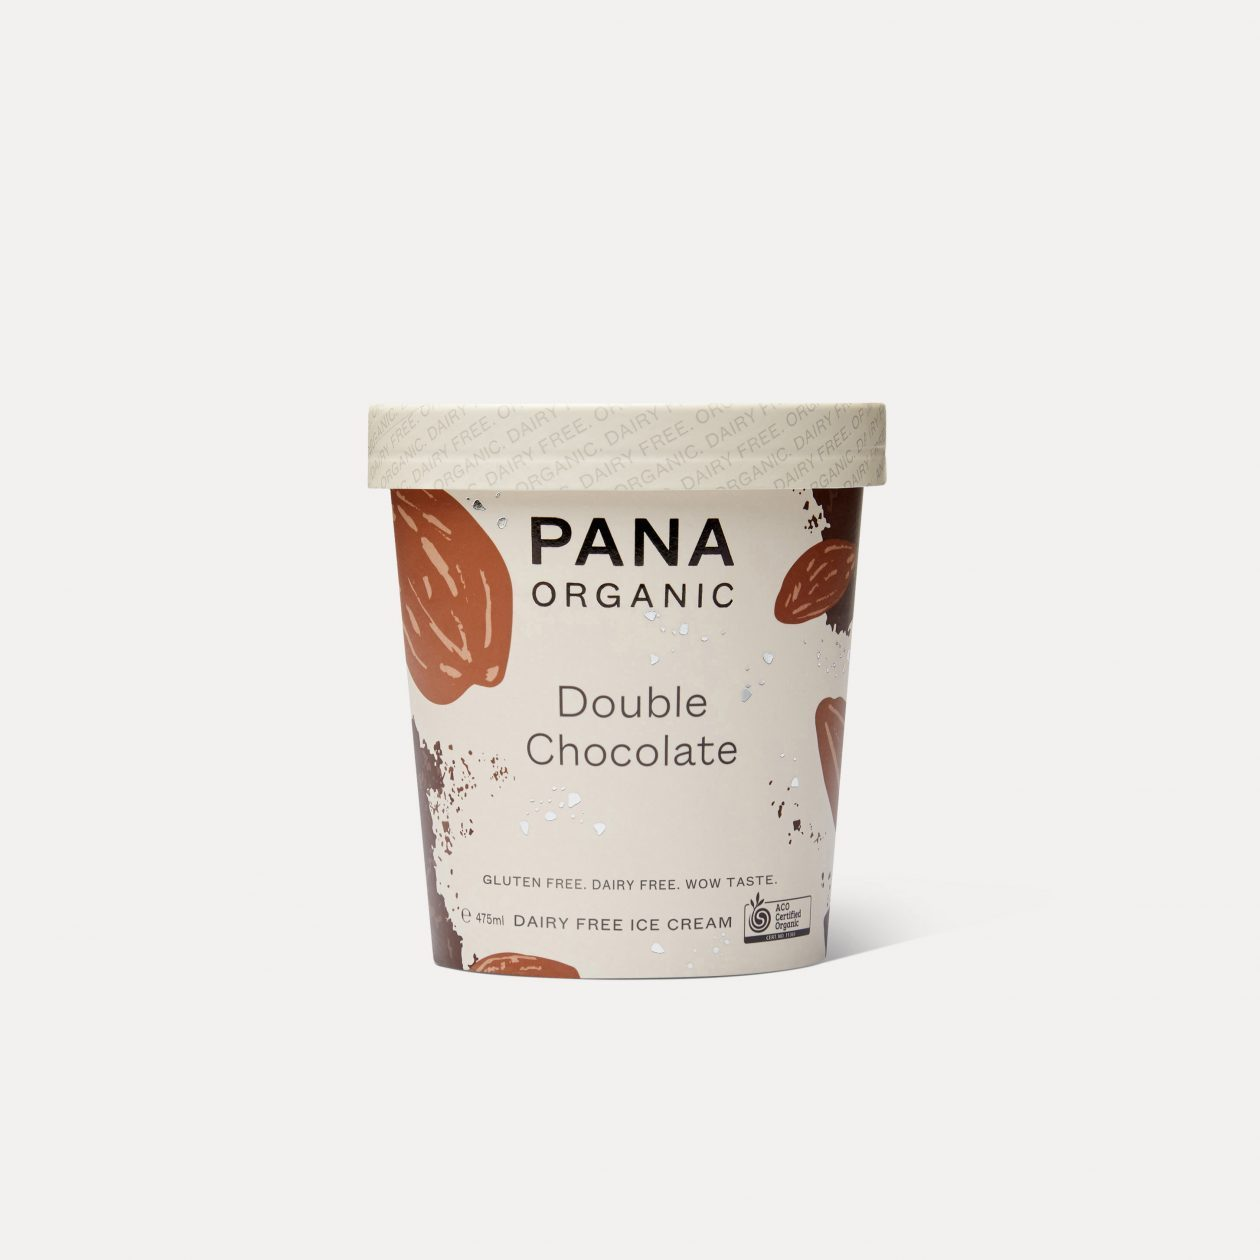 PANA ORGANIC Double Chocolate Dairy Free Ice Cream 475ml-Groceries-PANA Organic-Fresh Connection